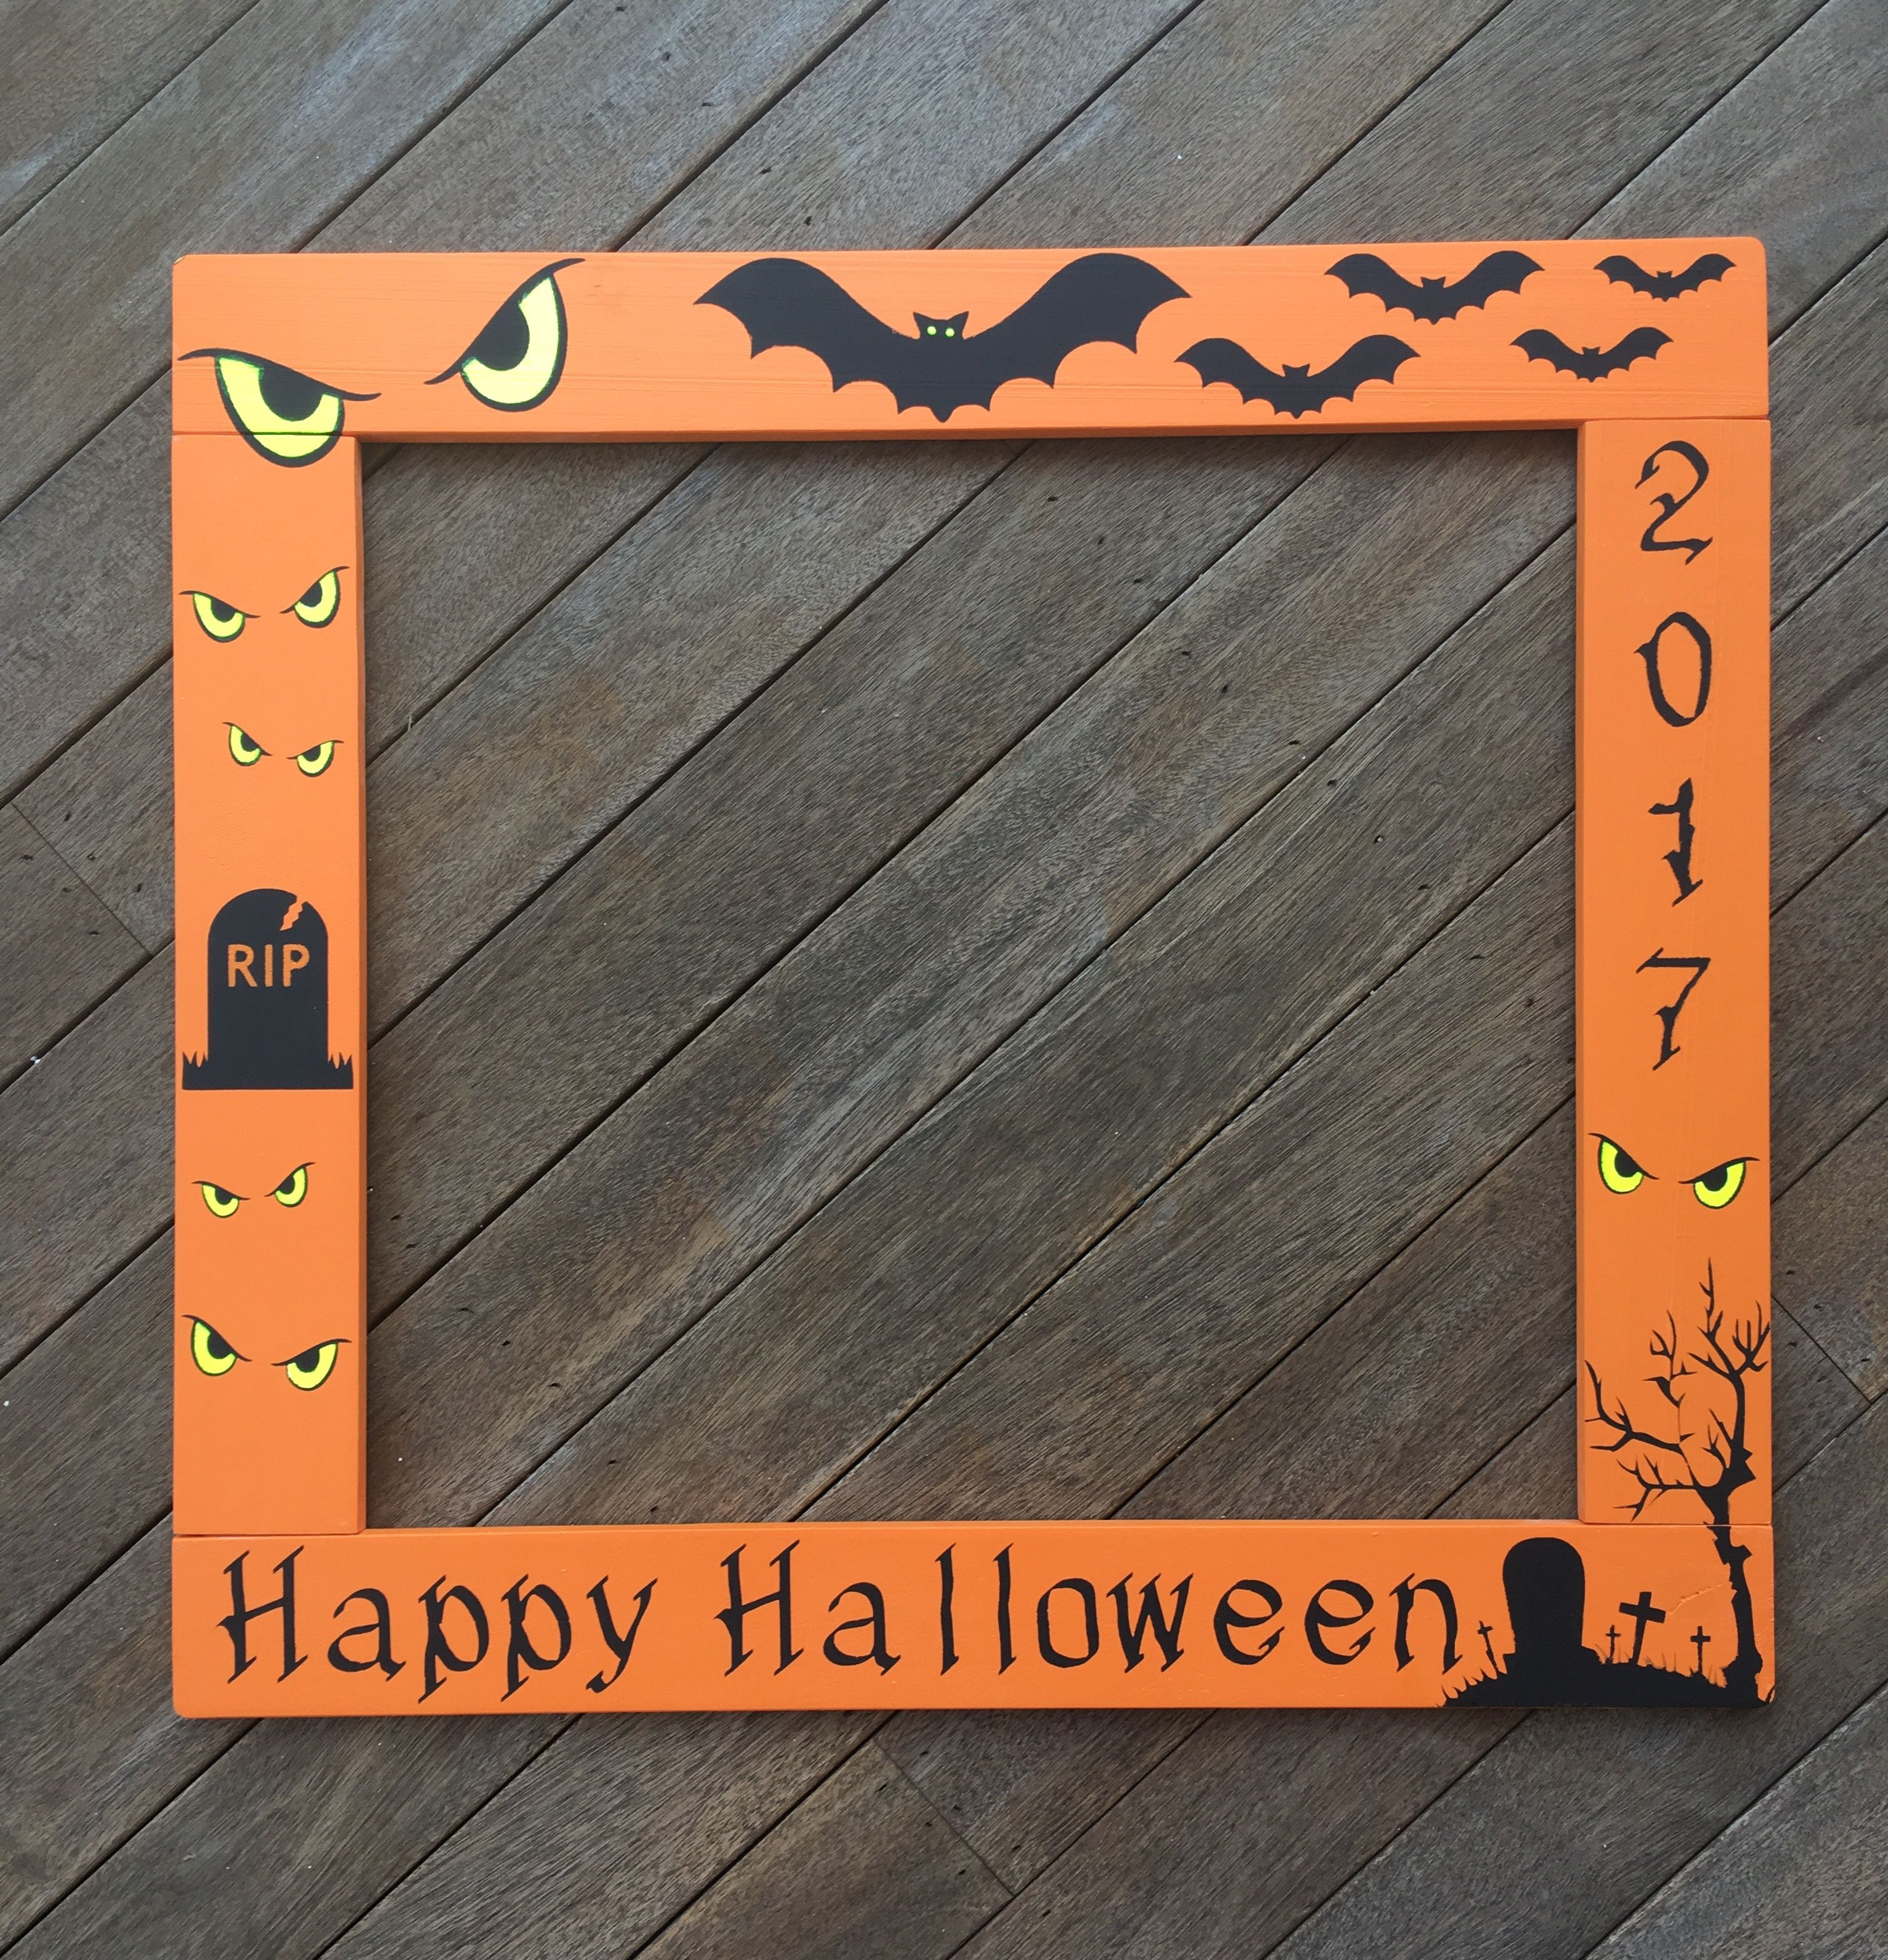 Photo booth frame halloween photobooth halloween picture frame halloween photobooth halloween photo frame prop spooky photobooth props halloween photo prop jeuxipadfo Choice Image